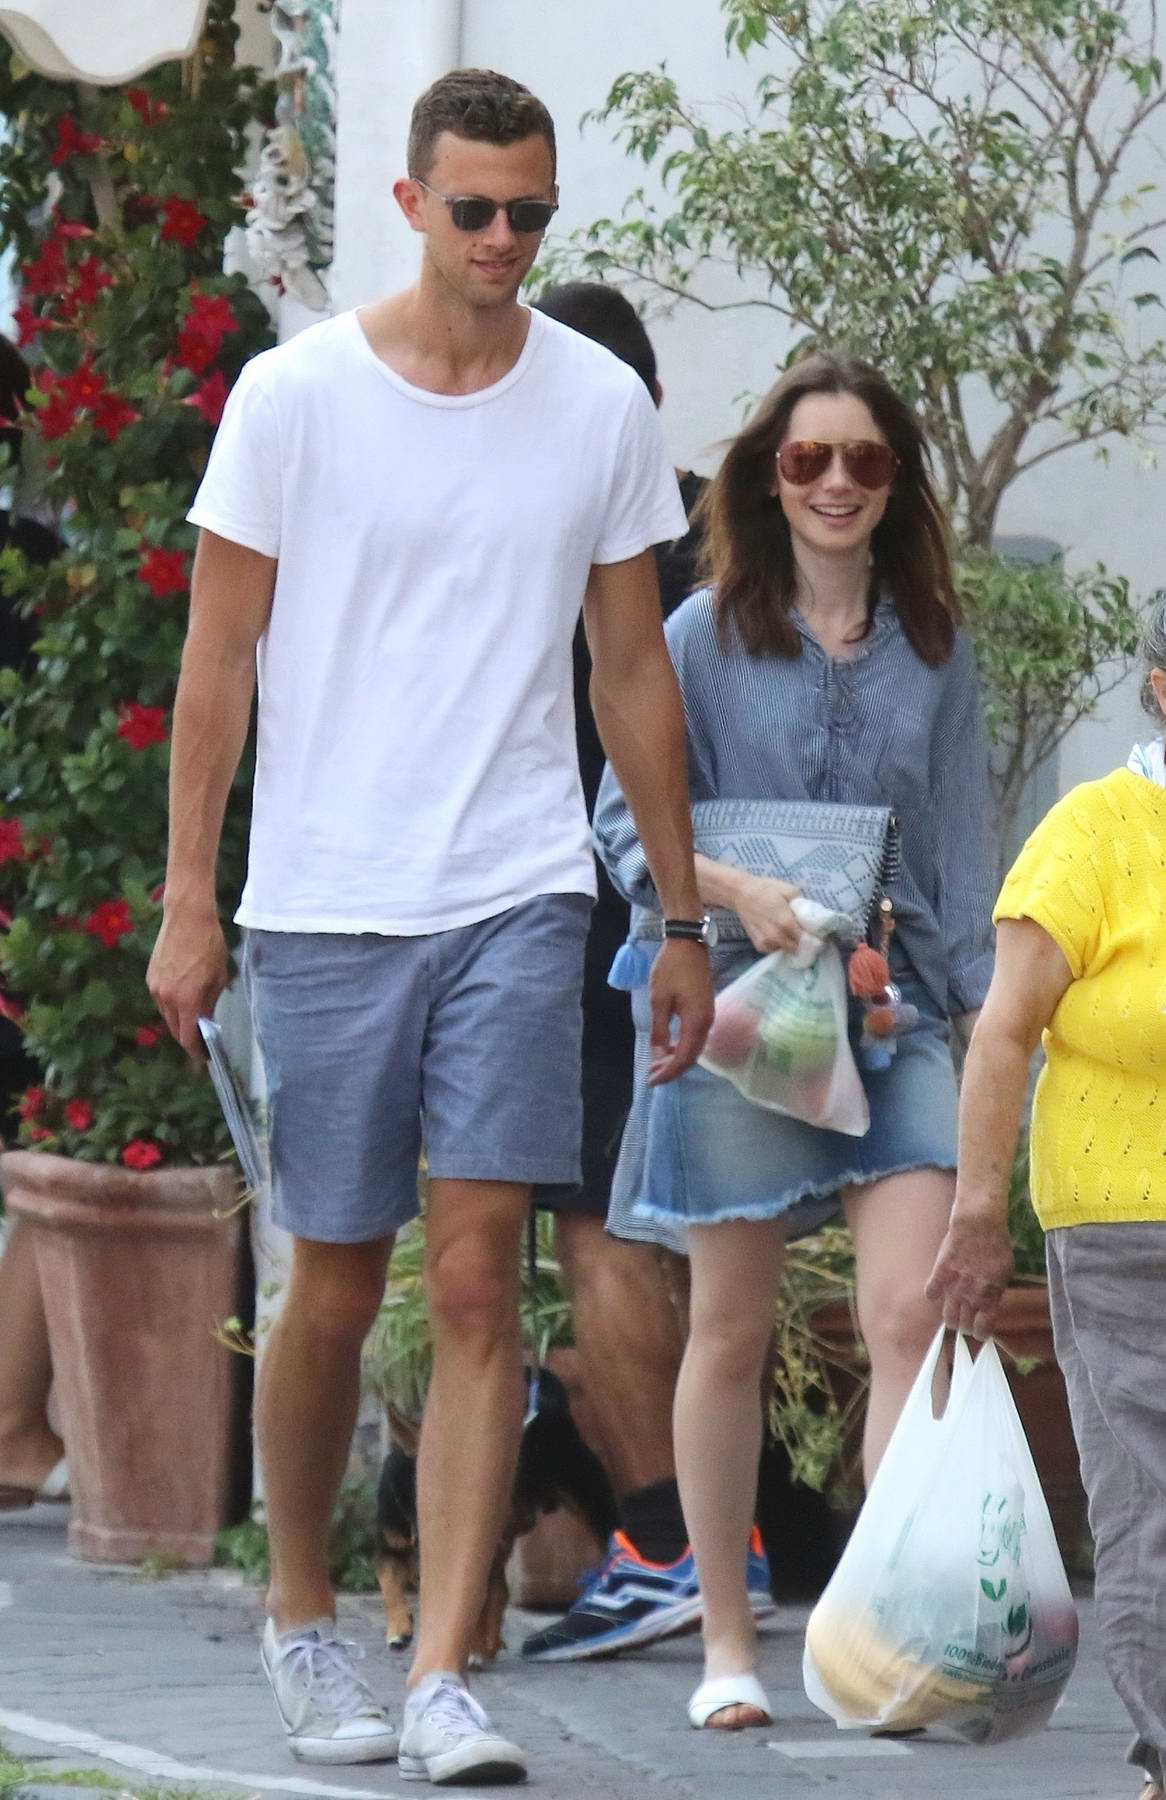 Lily Collins spotted out with a Mystery Man in Ischia, Italy